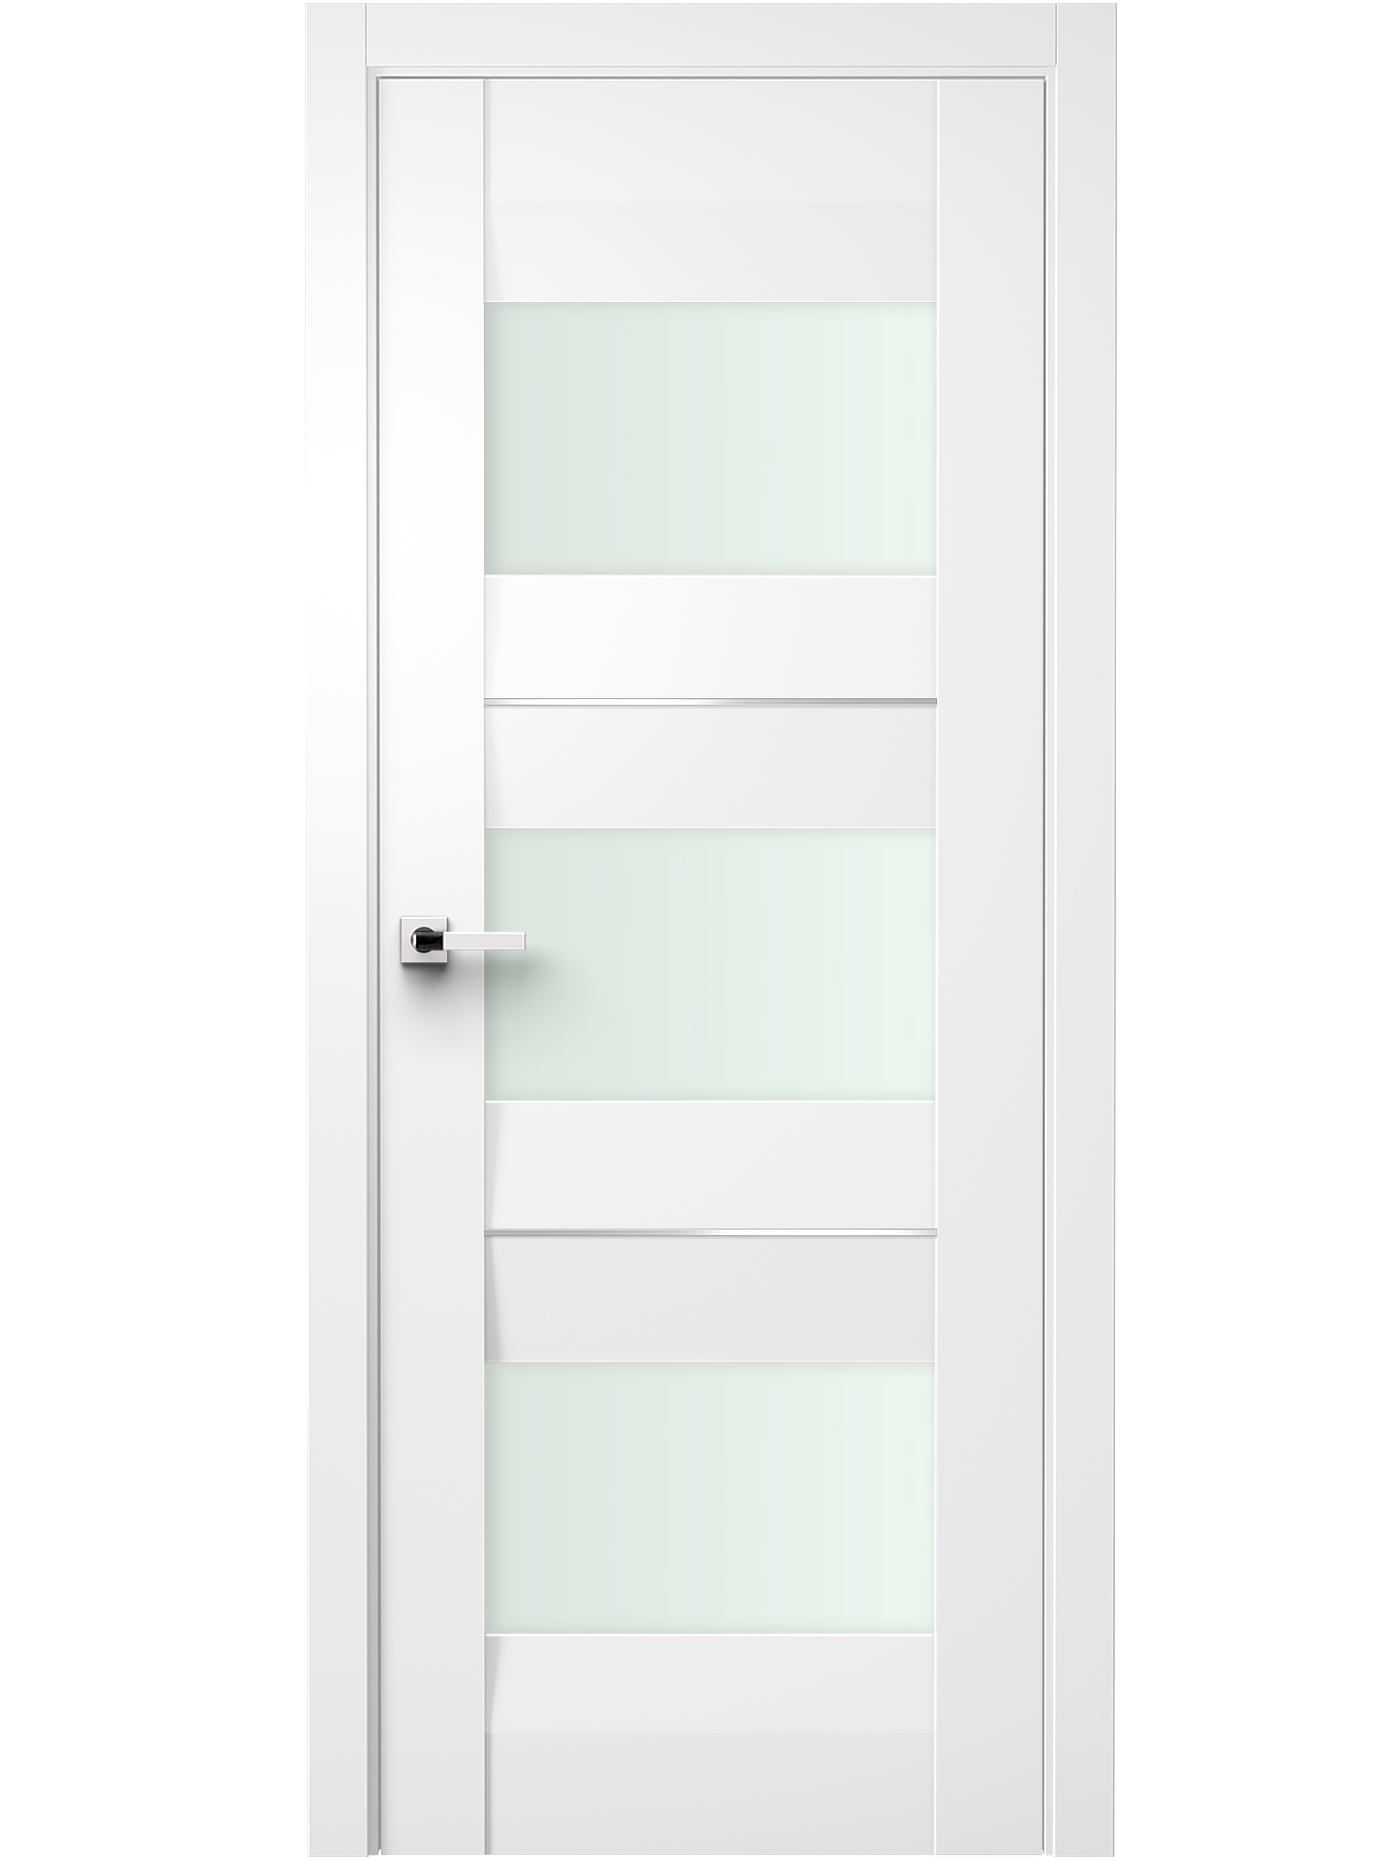 Image Fiera Interior Door Soft Touch White/ Frosted Glass 0